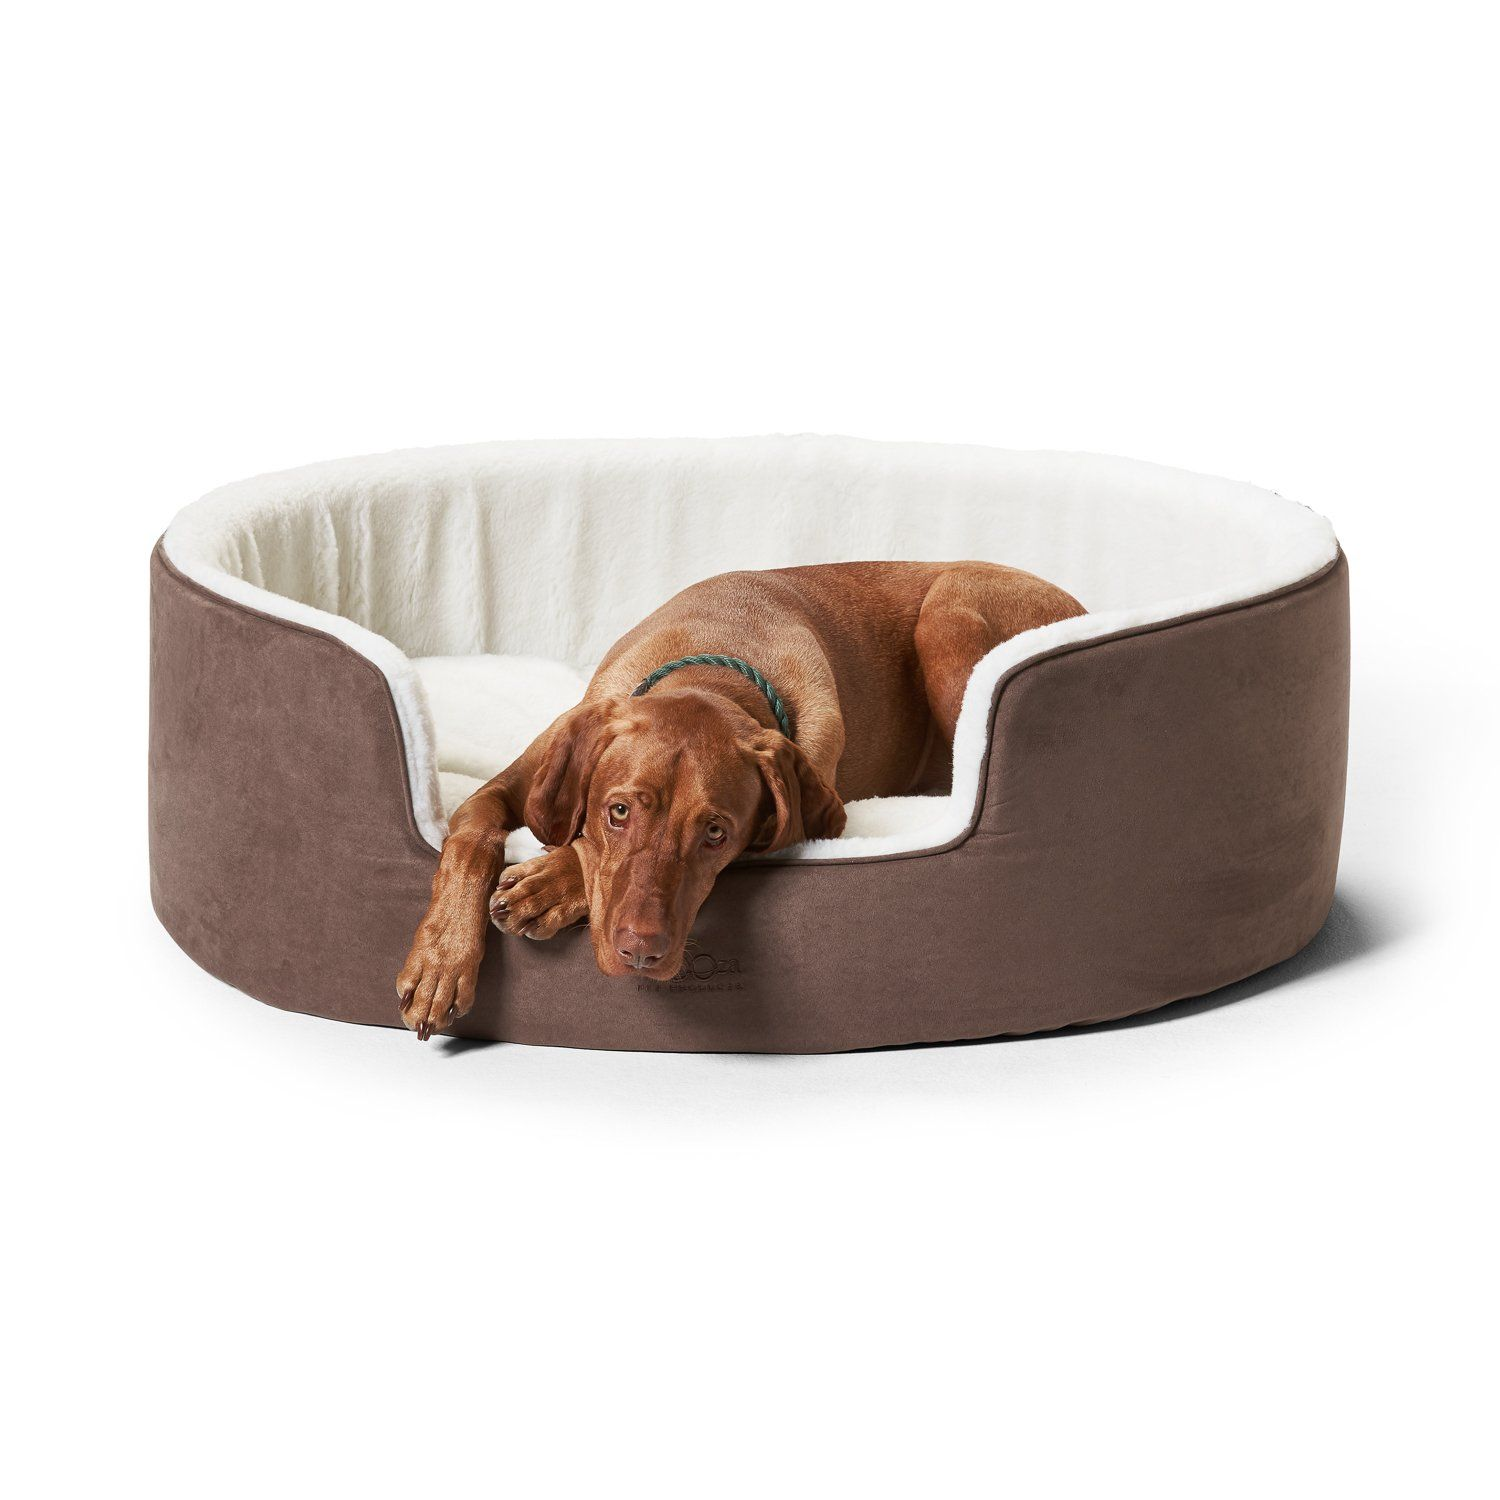 Buddy Bed Mocha Orthopedic Washable Dog Bed Is Now On Sale In